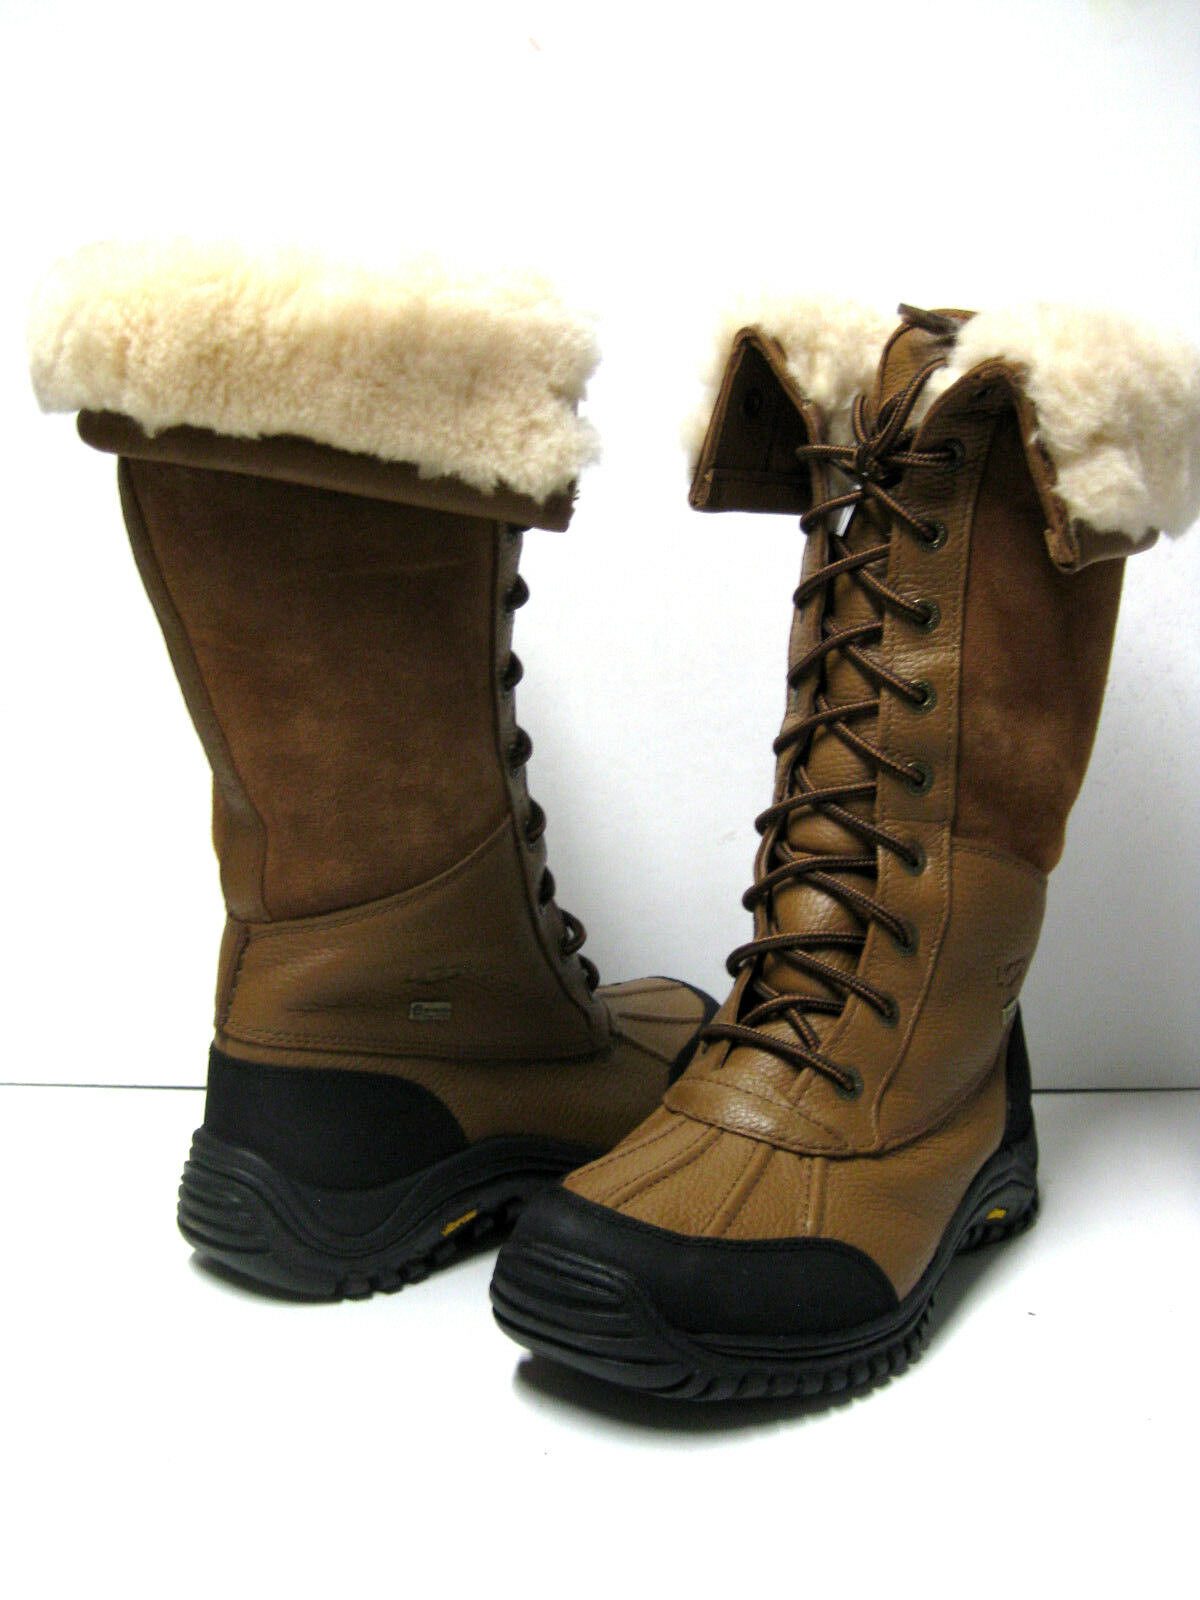 UGG ADIRONDACK WOMEN WINTER HOHE STIEFEL OTTER US 8 / UK 6,5 / EU 39 / JP 25